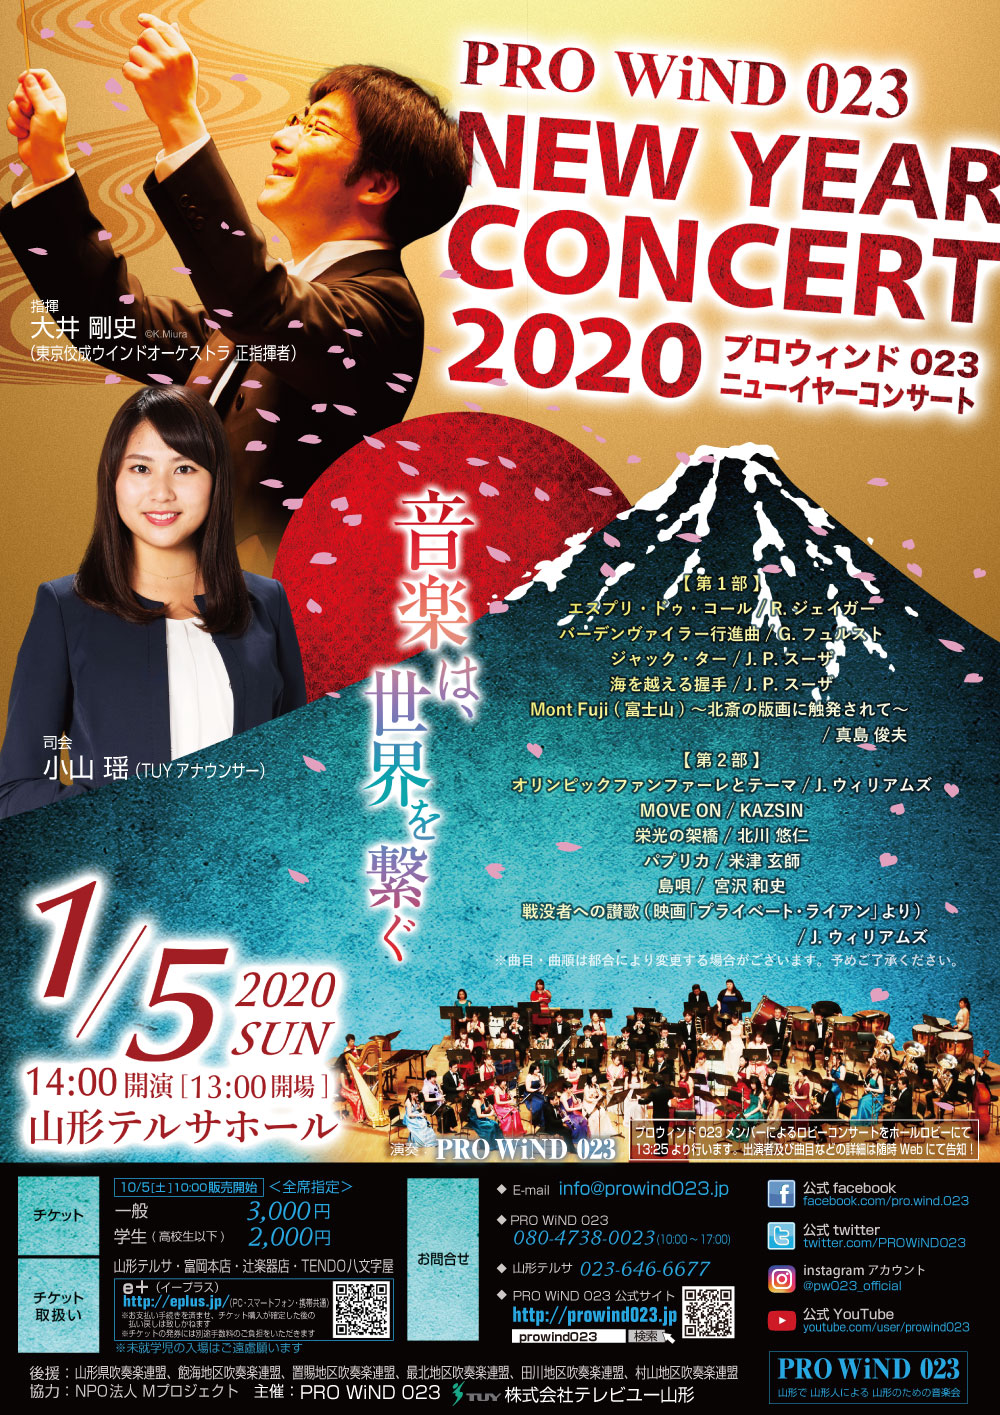 【PRO WiND 023】<br>NEW YEAR CONCERT 2020